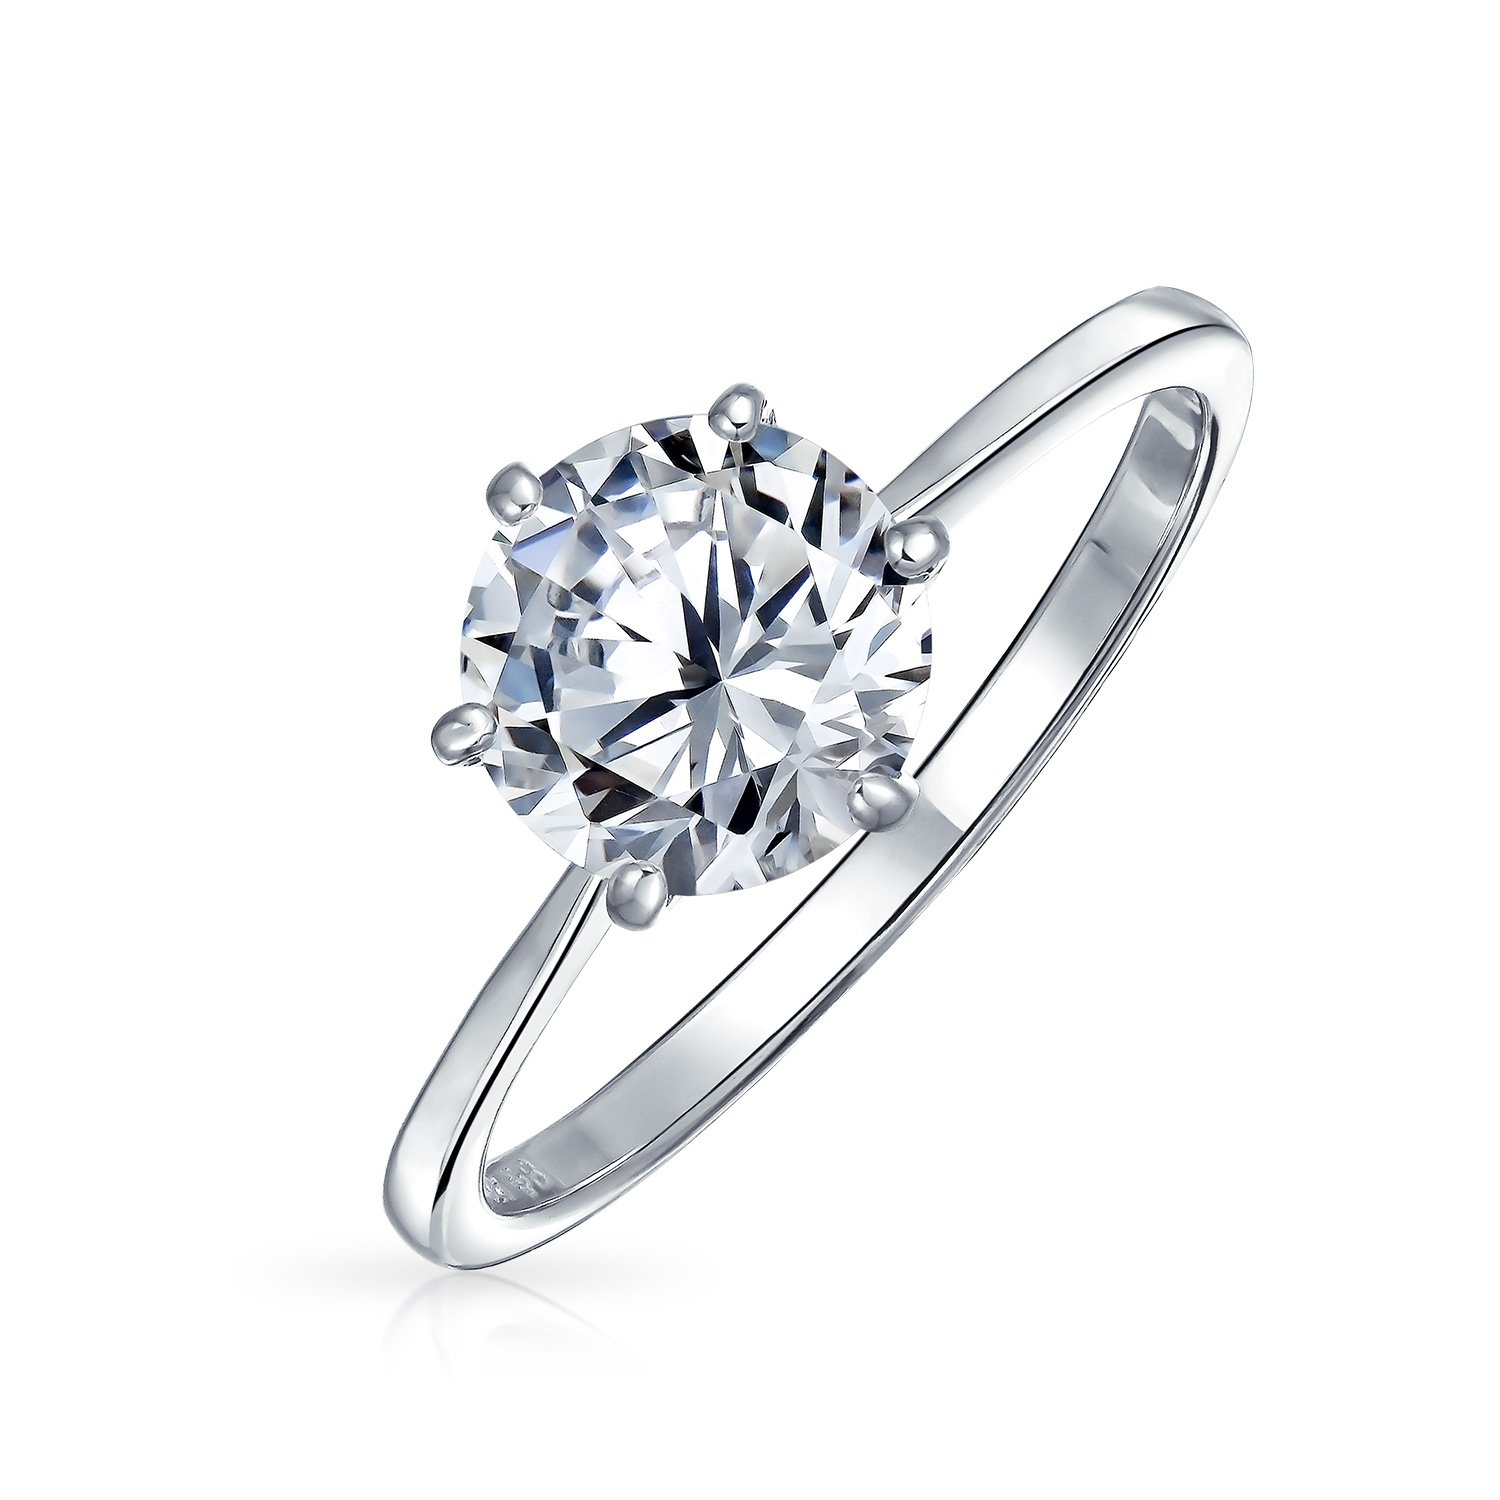 Bling Jewelry 925 Sterling Silver Round CZ Solitaire Engagement Ring - Size 5